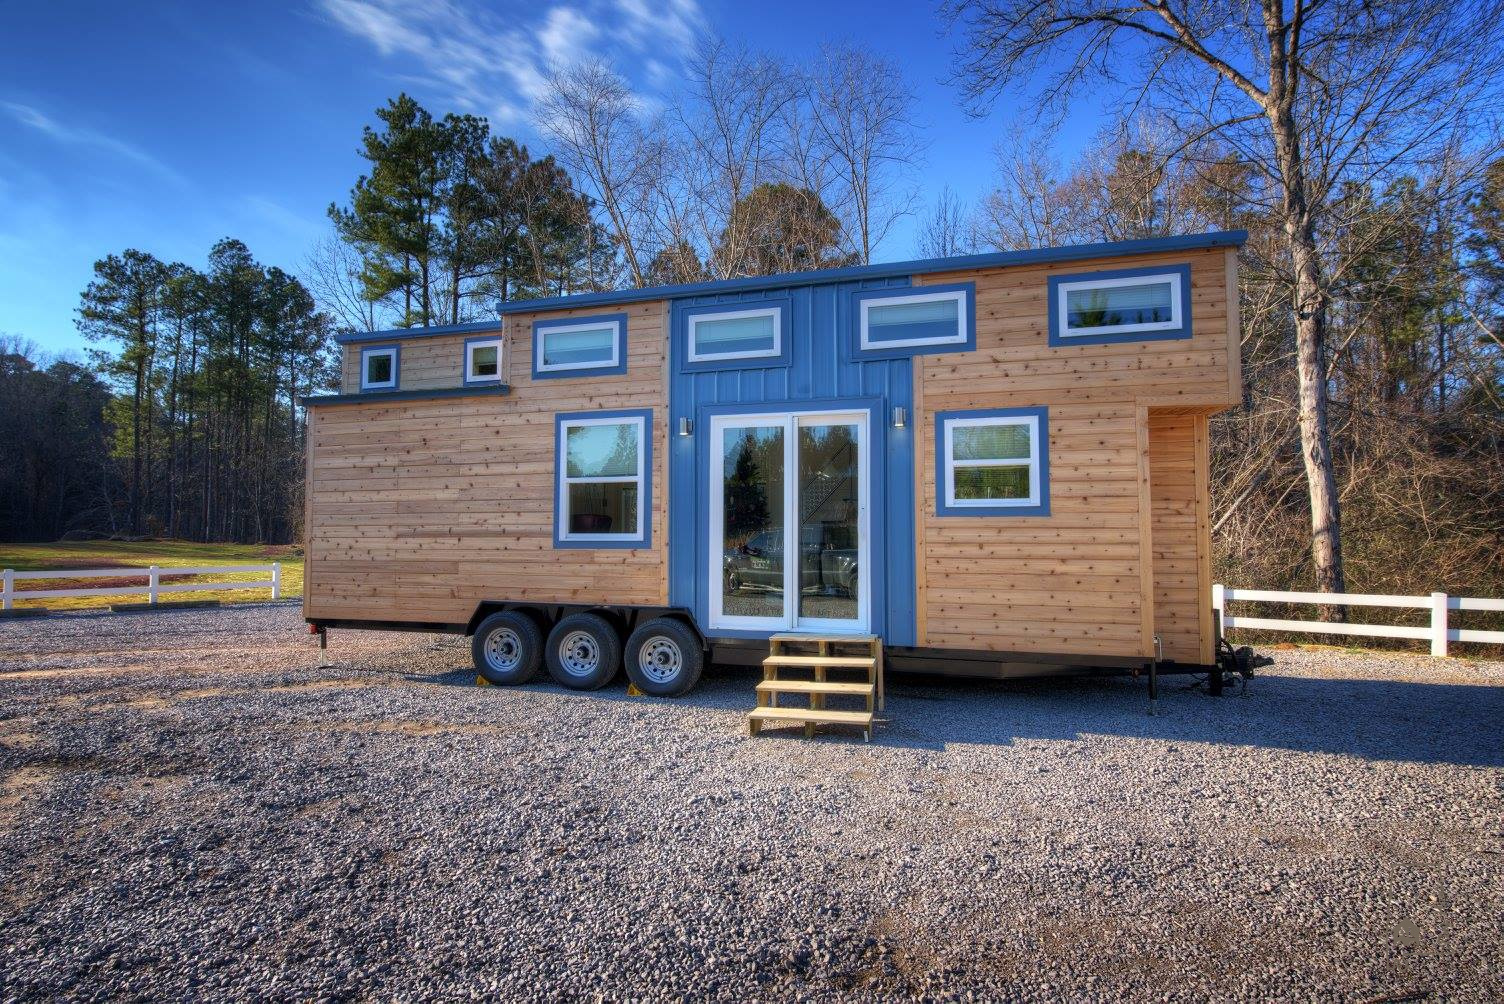 Tiny house town freedom v2 by alabama tiny homes 304 sq ft for Home builders in south alabama